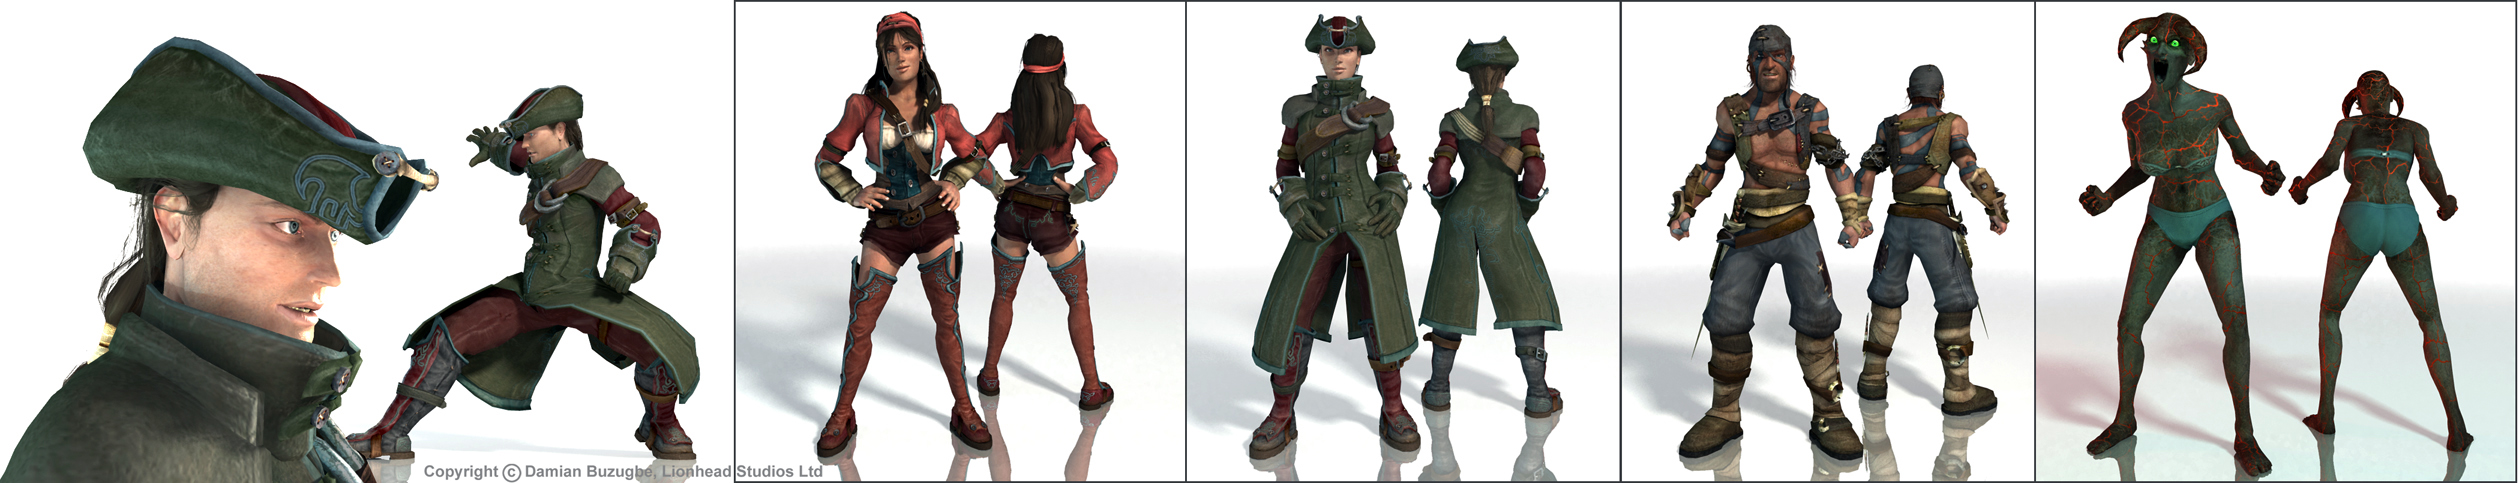 Fable 2 various in game assets by OmenD4 on DeviantArt